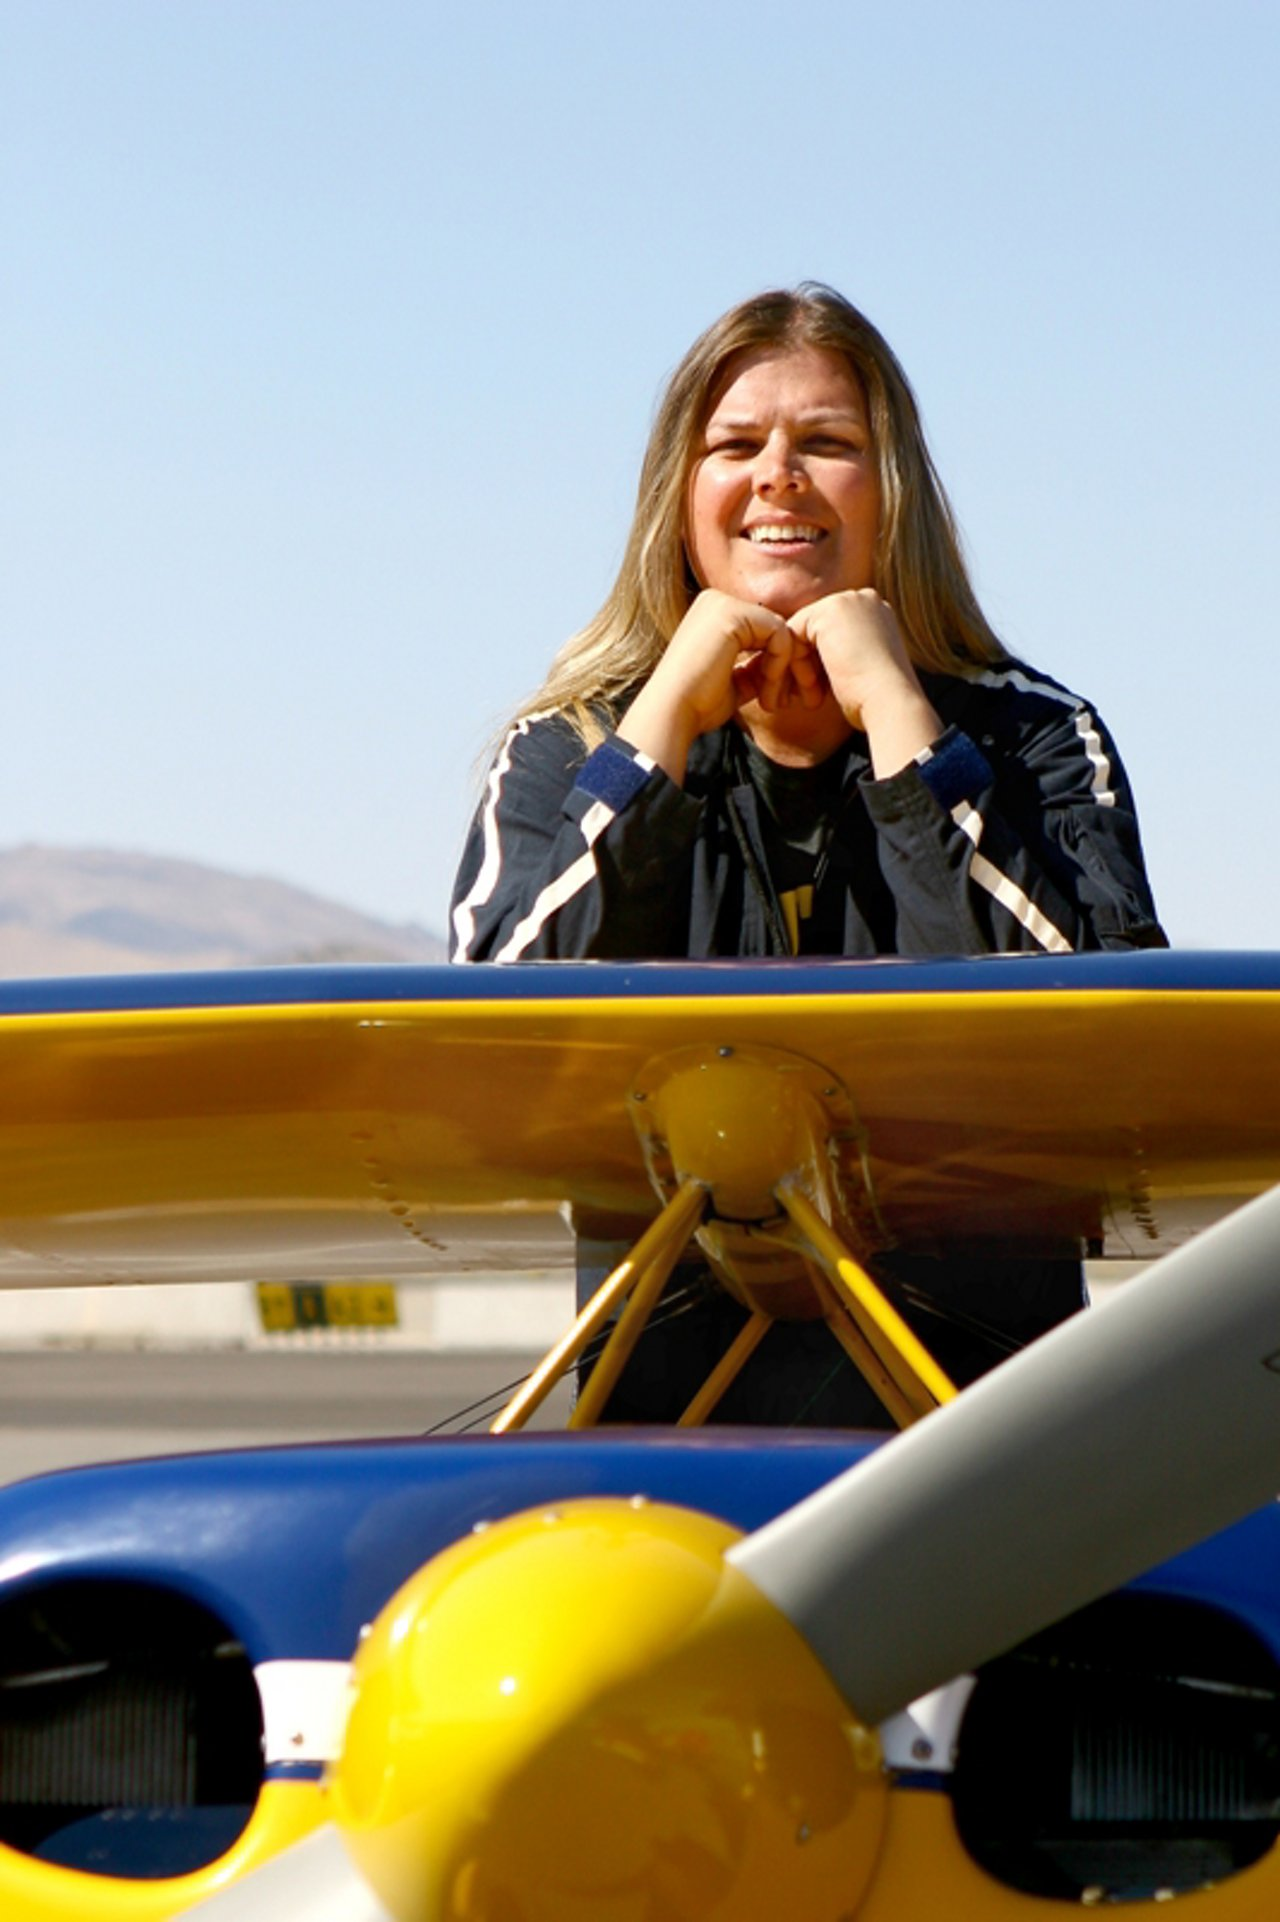 Casey Erickson is captain of Team AllWays Air Racing, a participating team in Air Race E, which will become the world's first all-electric airplane race when it launches its inaugural series of international races in 2020.